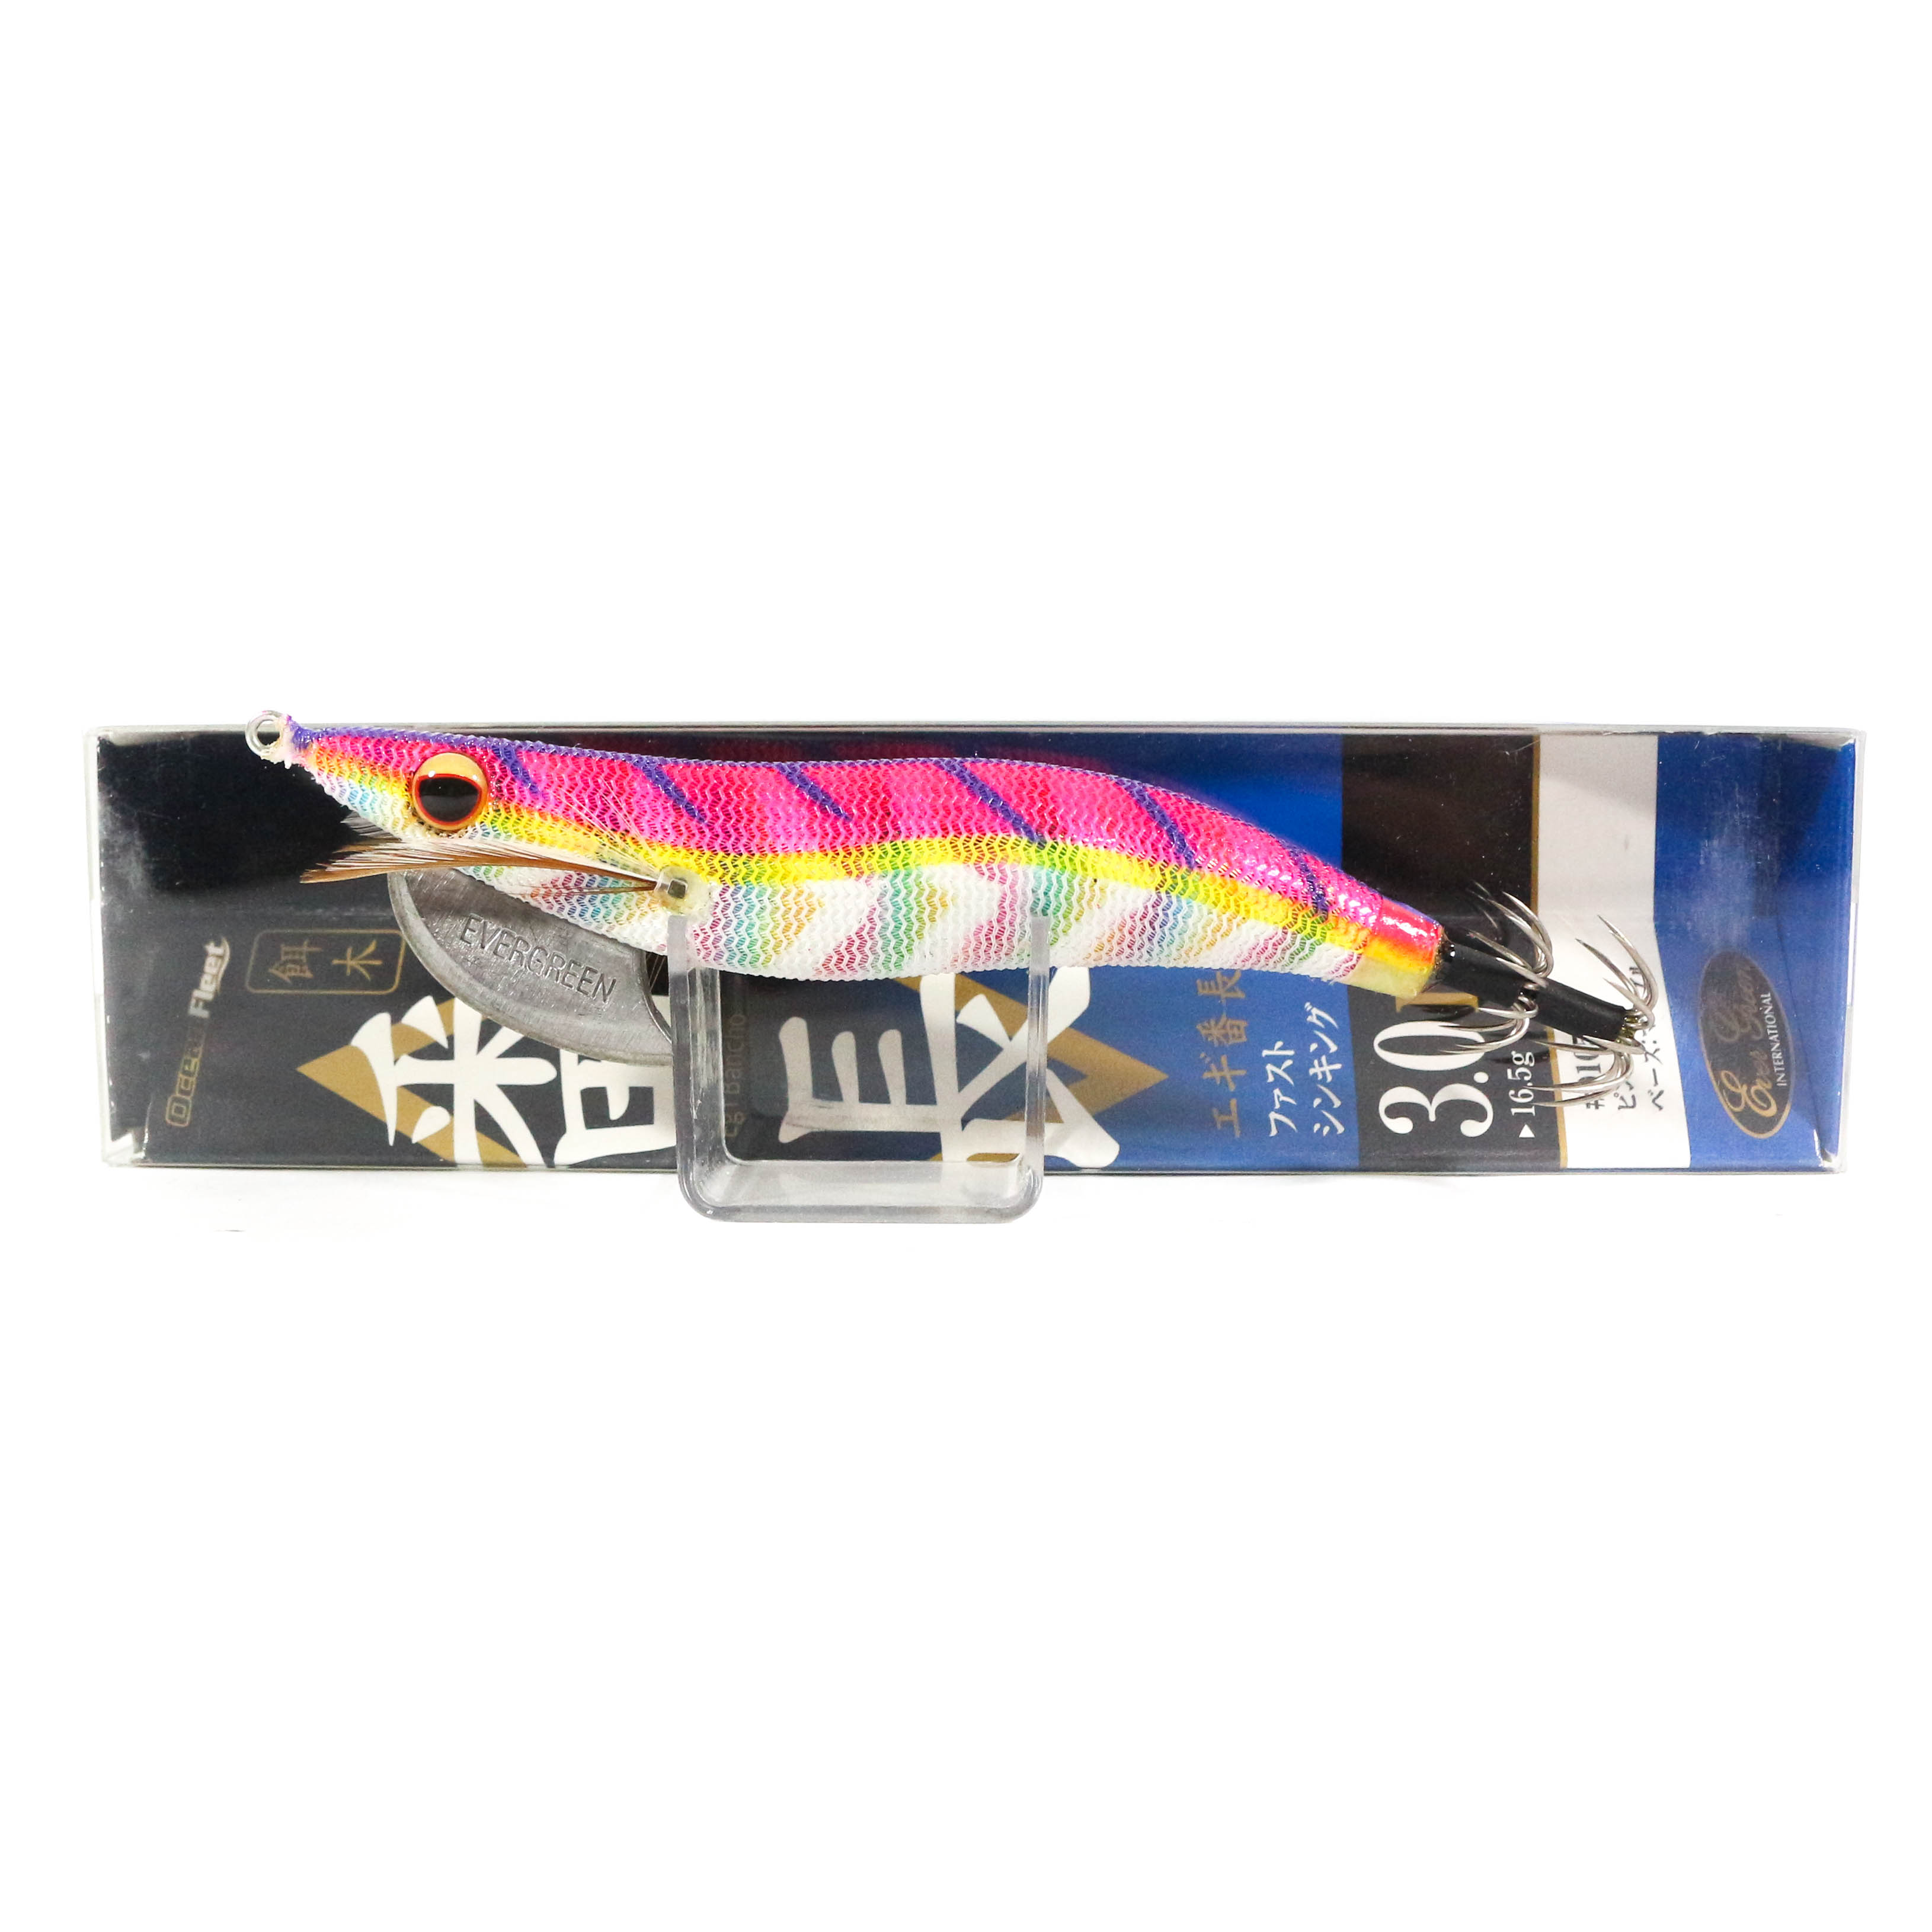 Evergreen Ocean Fleet Custom Squid Jig Lure 3.0D 0105M (3313)